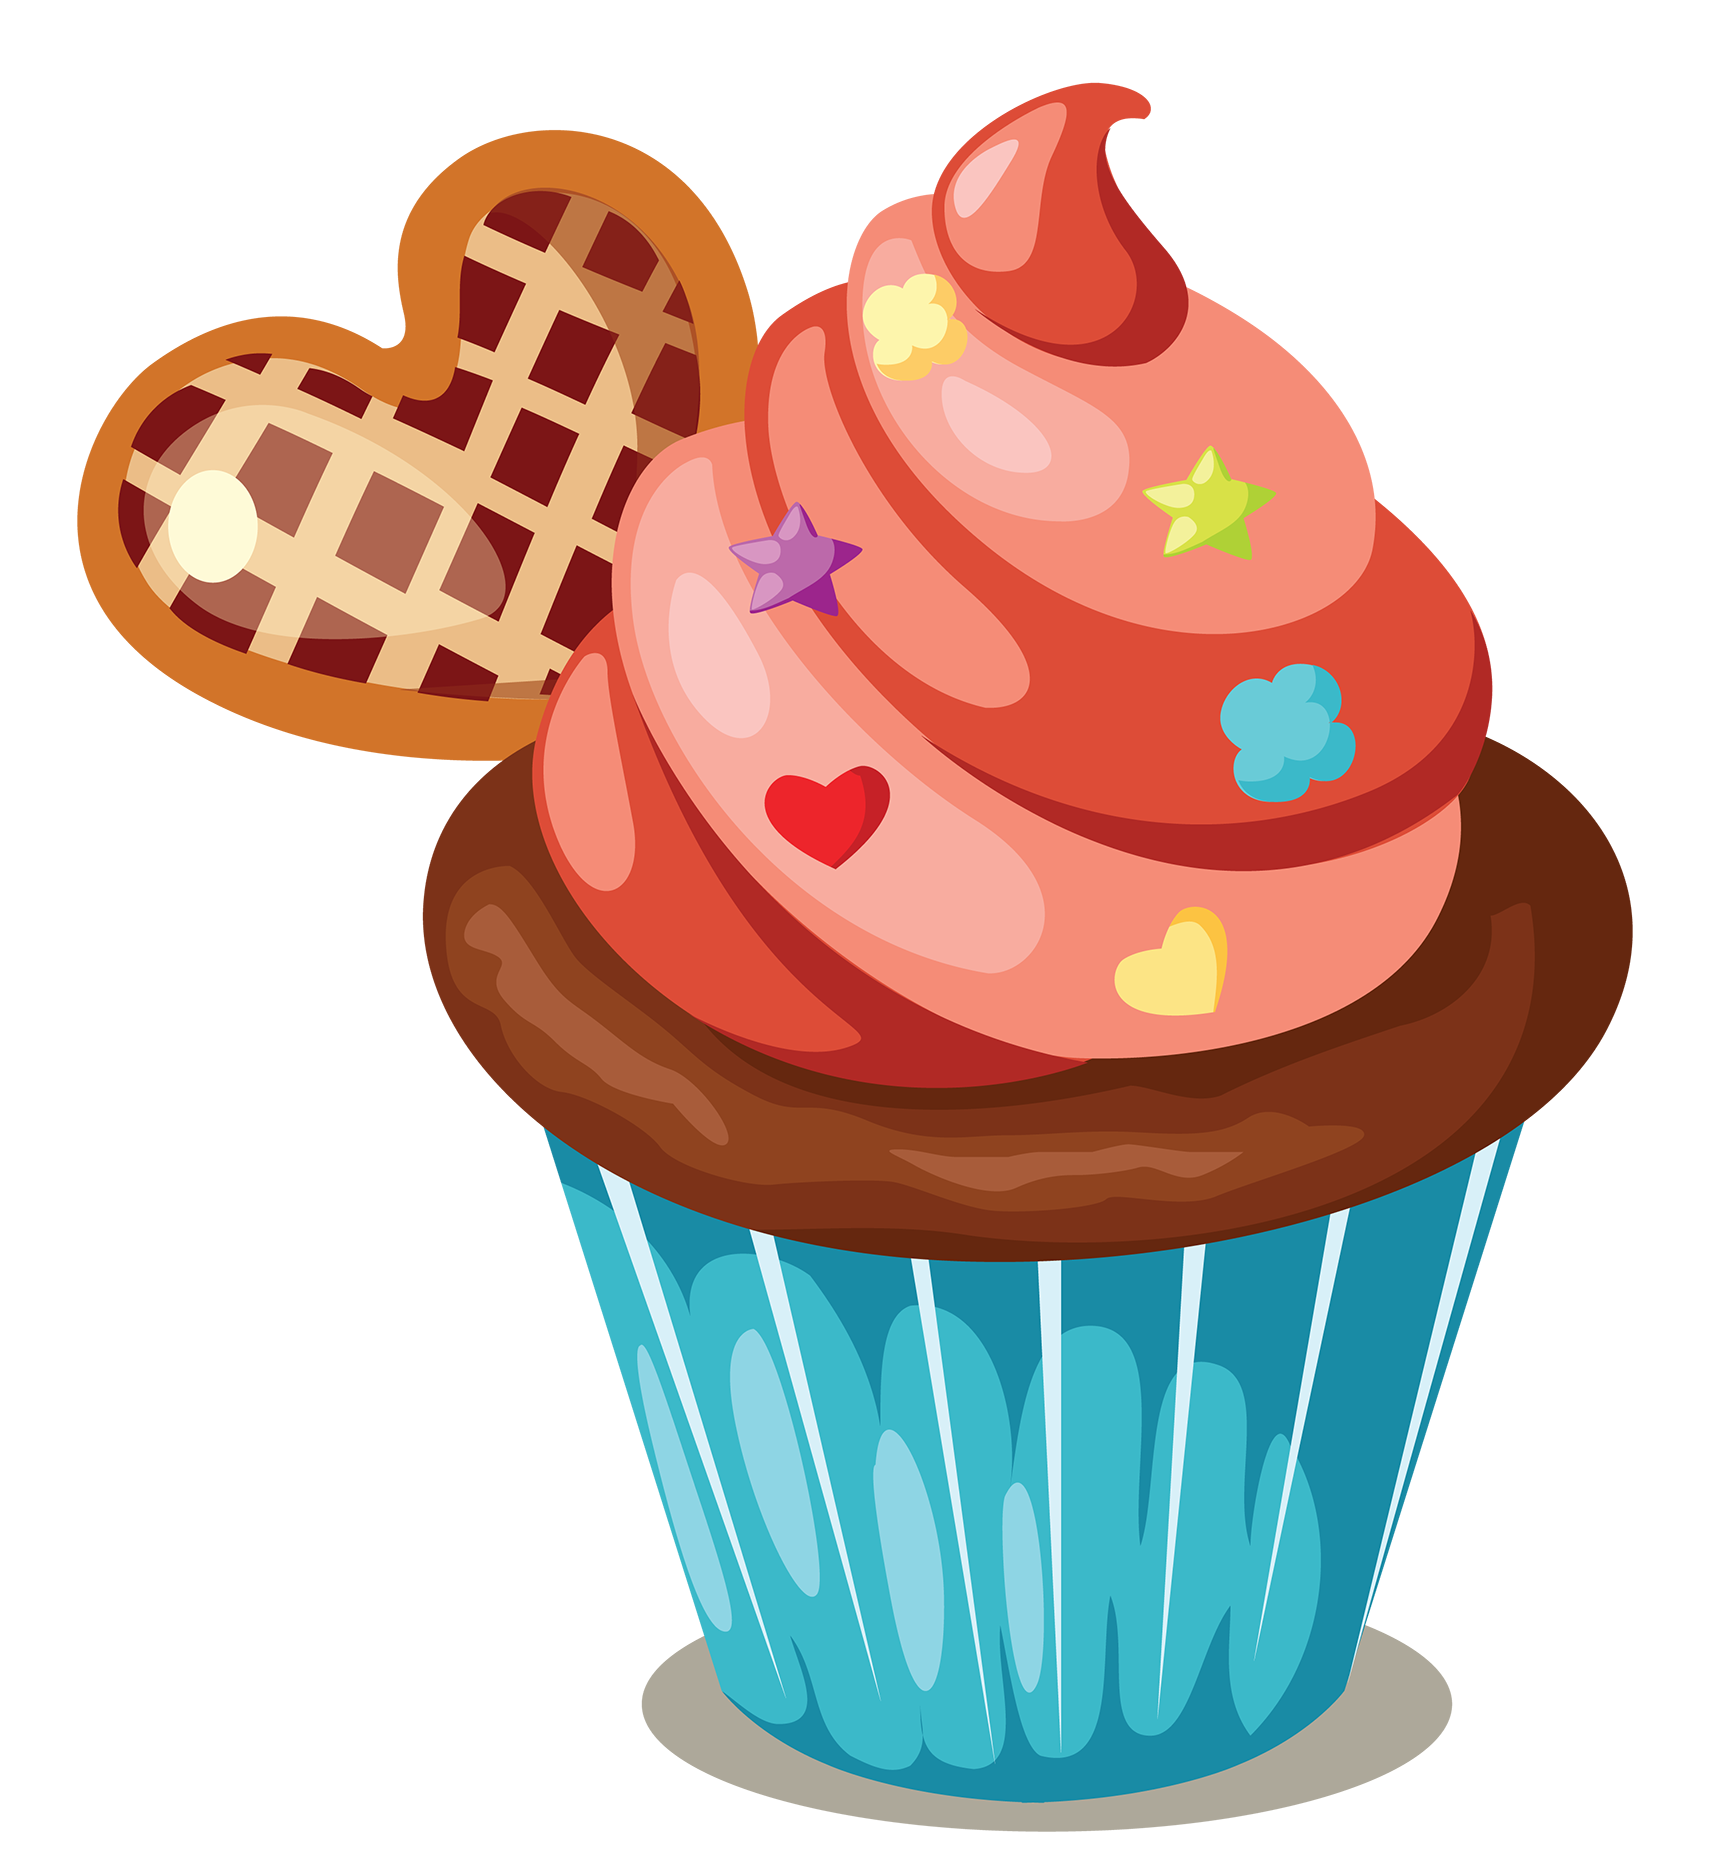 Apple with muffins clipart svg free library Cupcake Icing Birthday cake Muffin Clip art - Delicious cupcakes ... svg free library